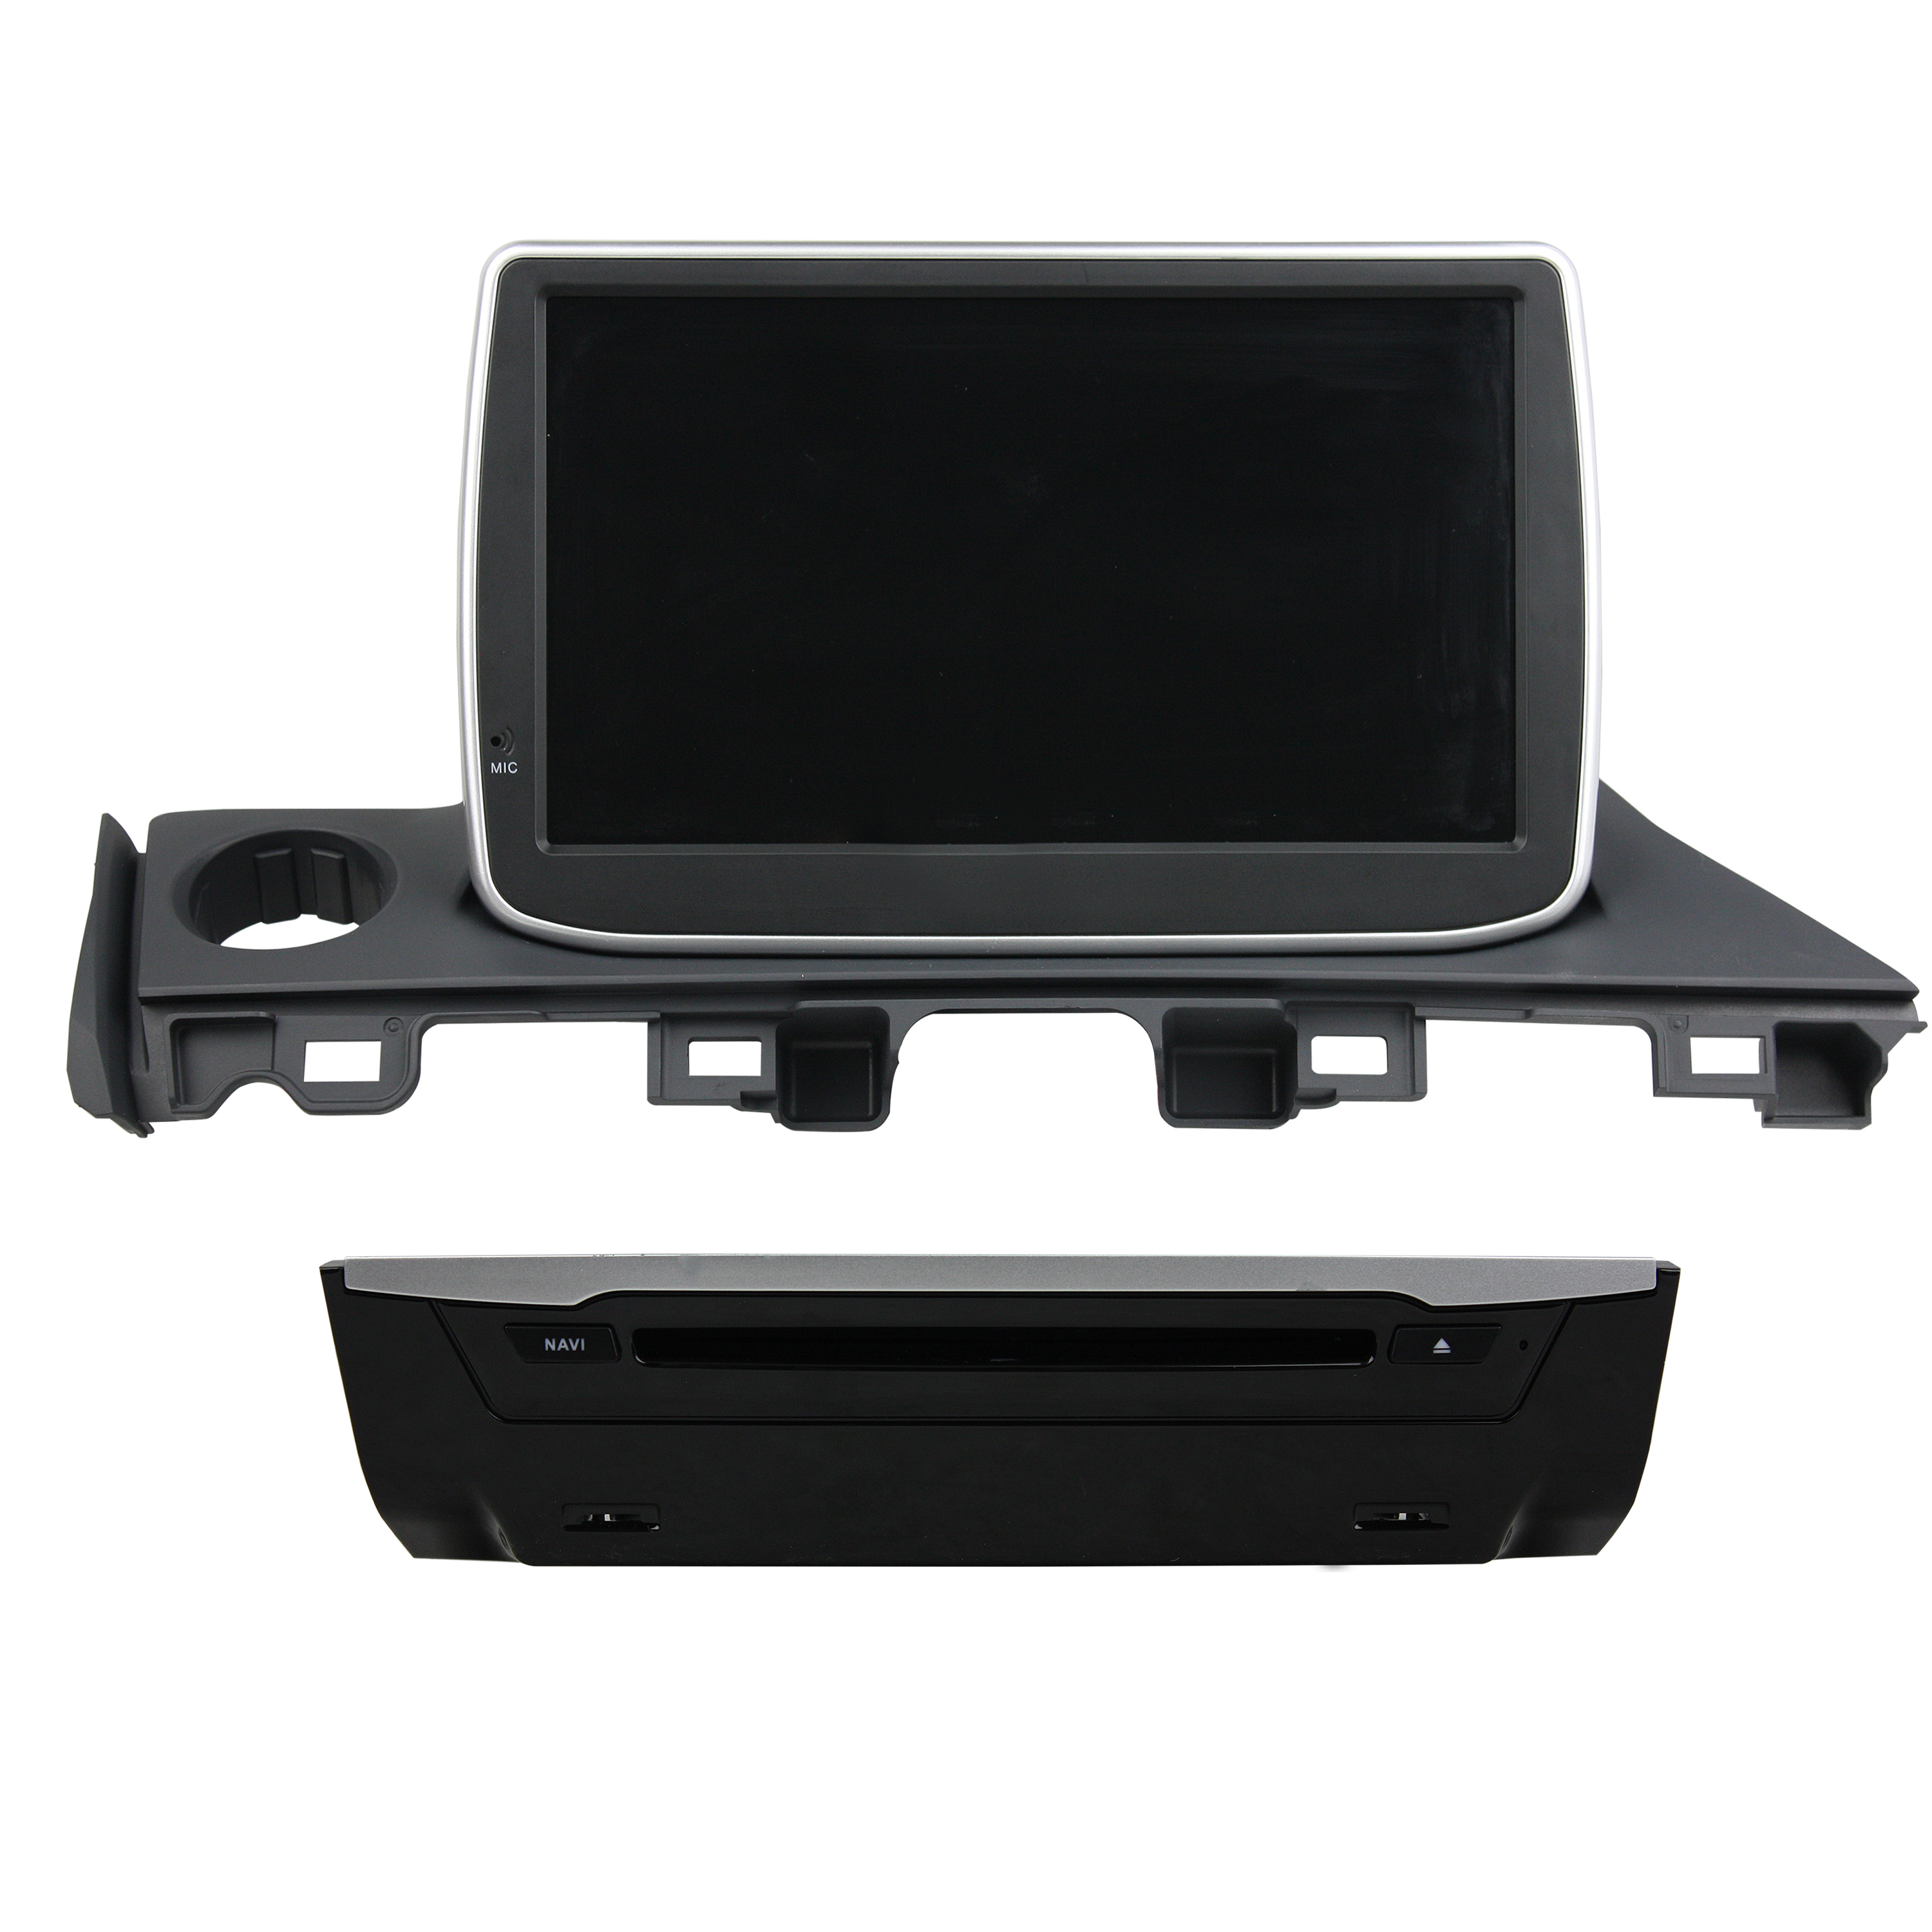 Mazda 6 Atenza 2017 CAR DVD player 9 inch